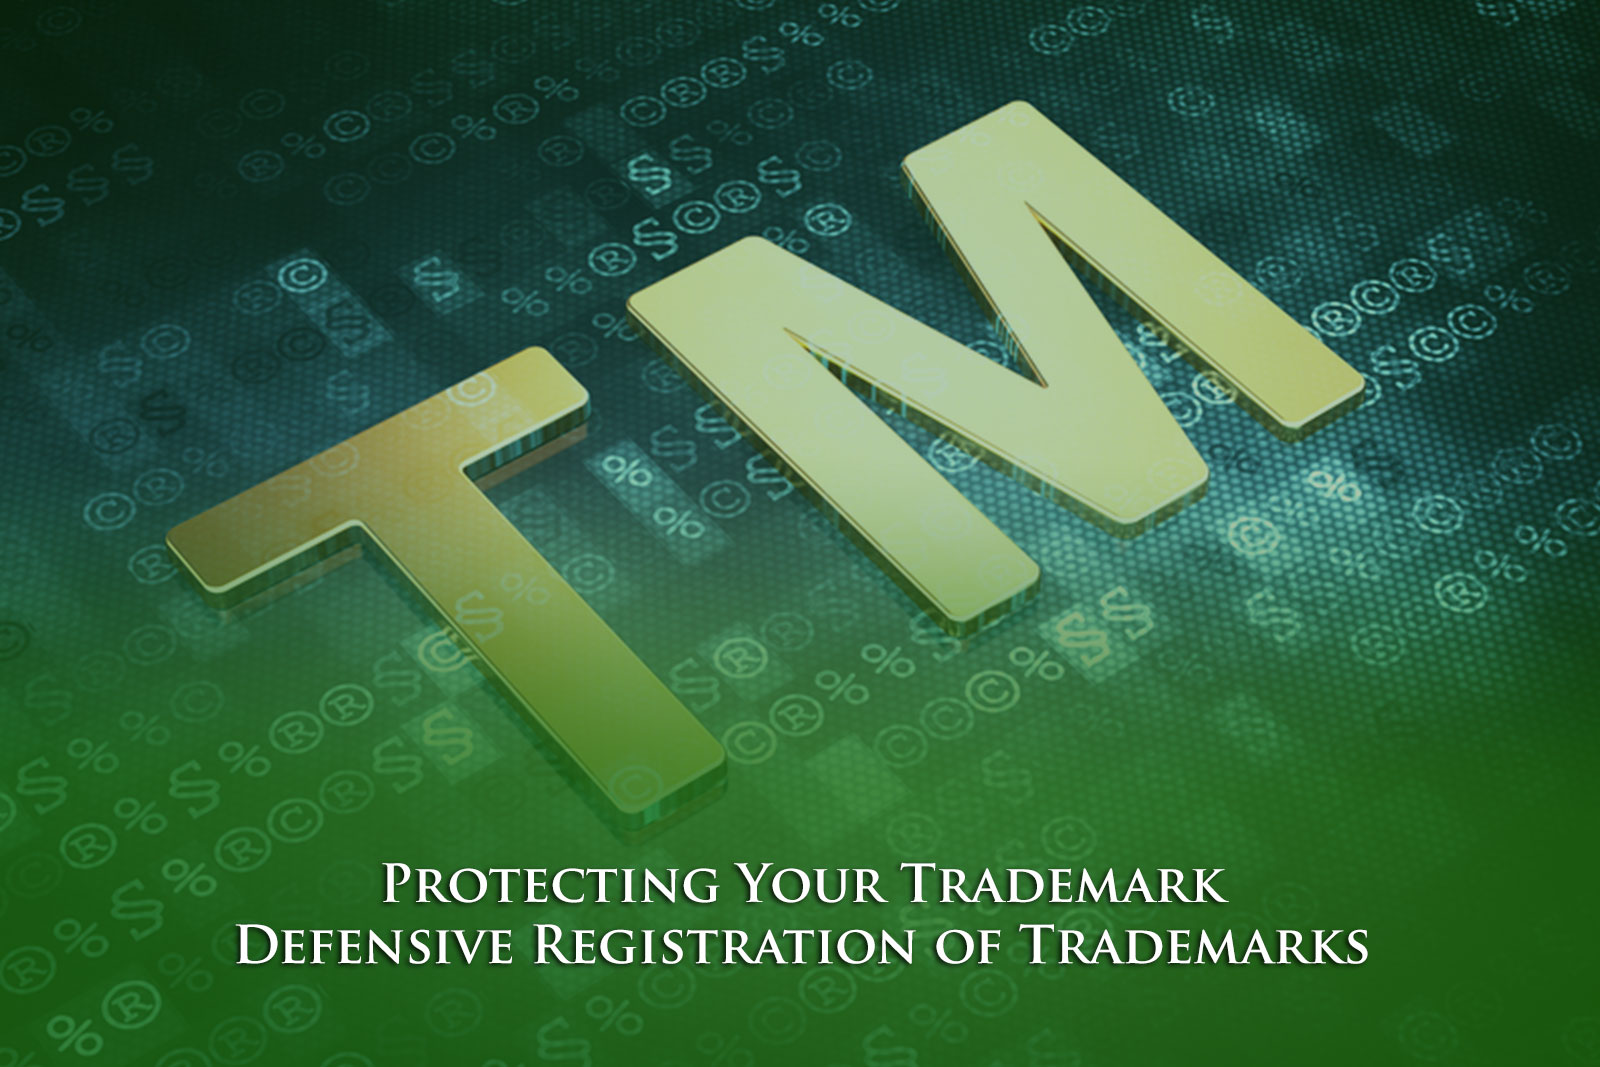 Protecting Your Trademark